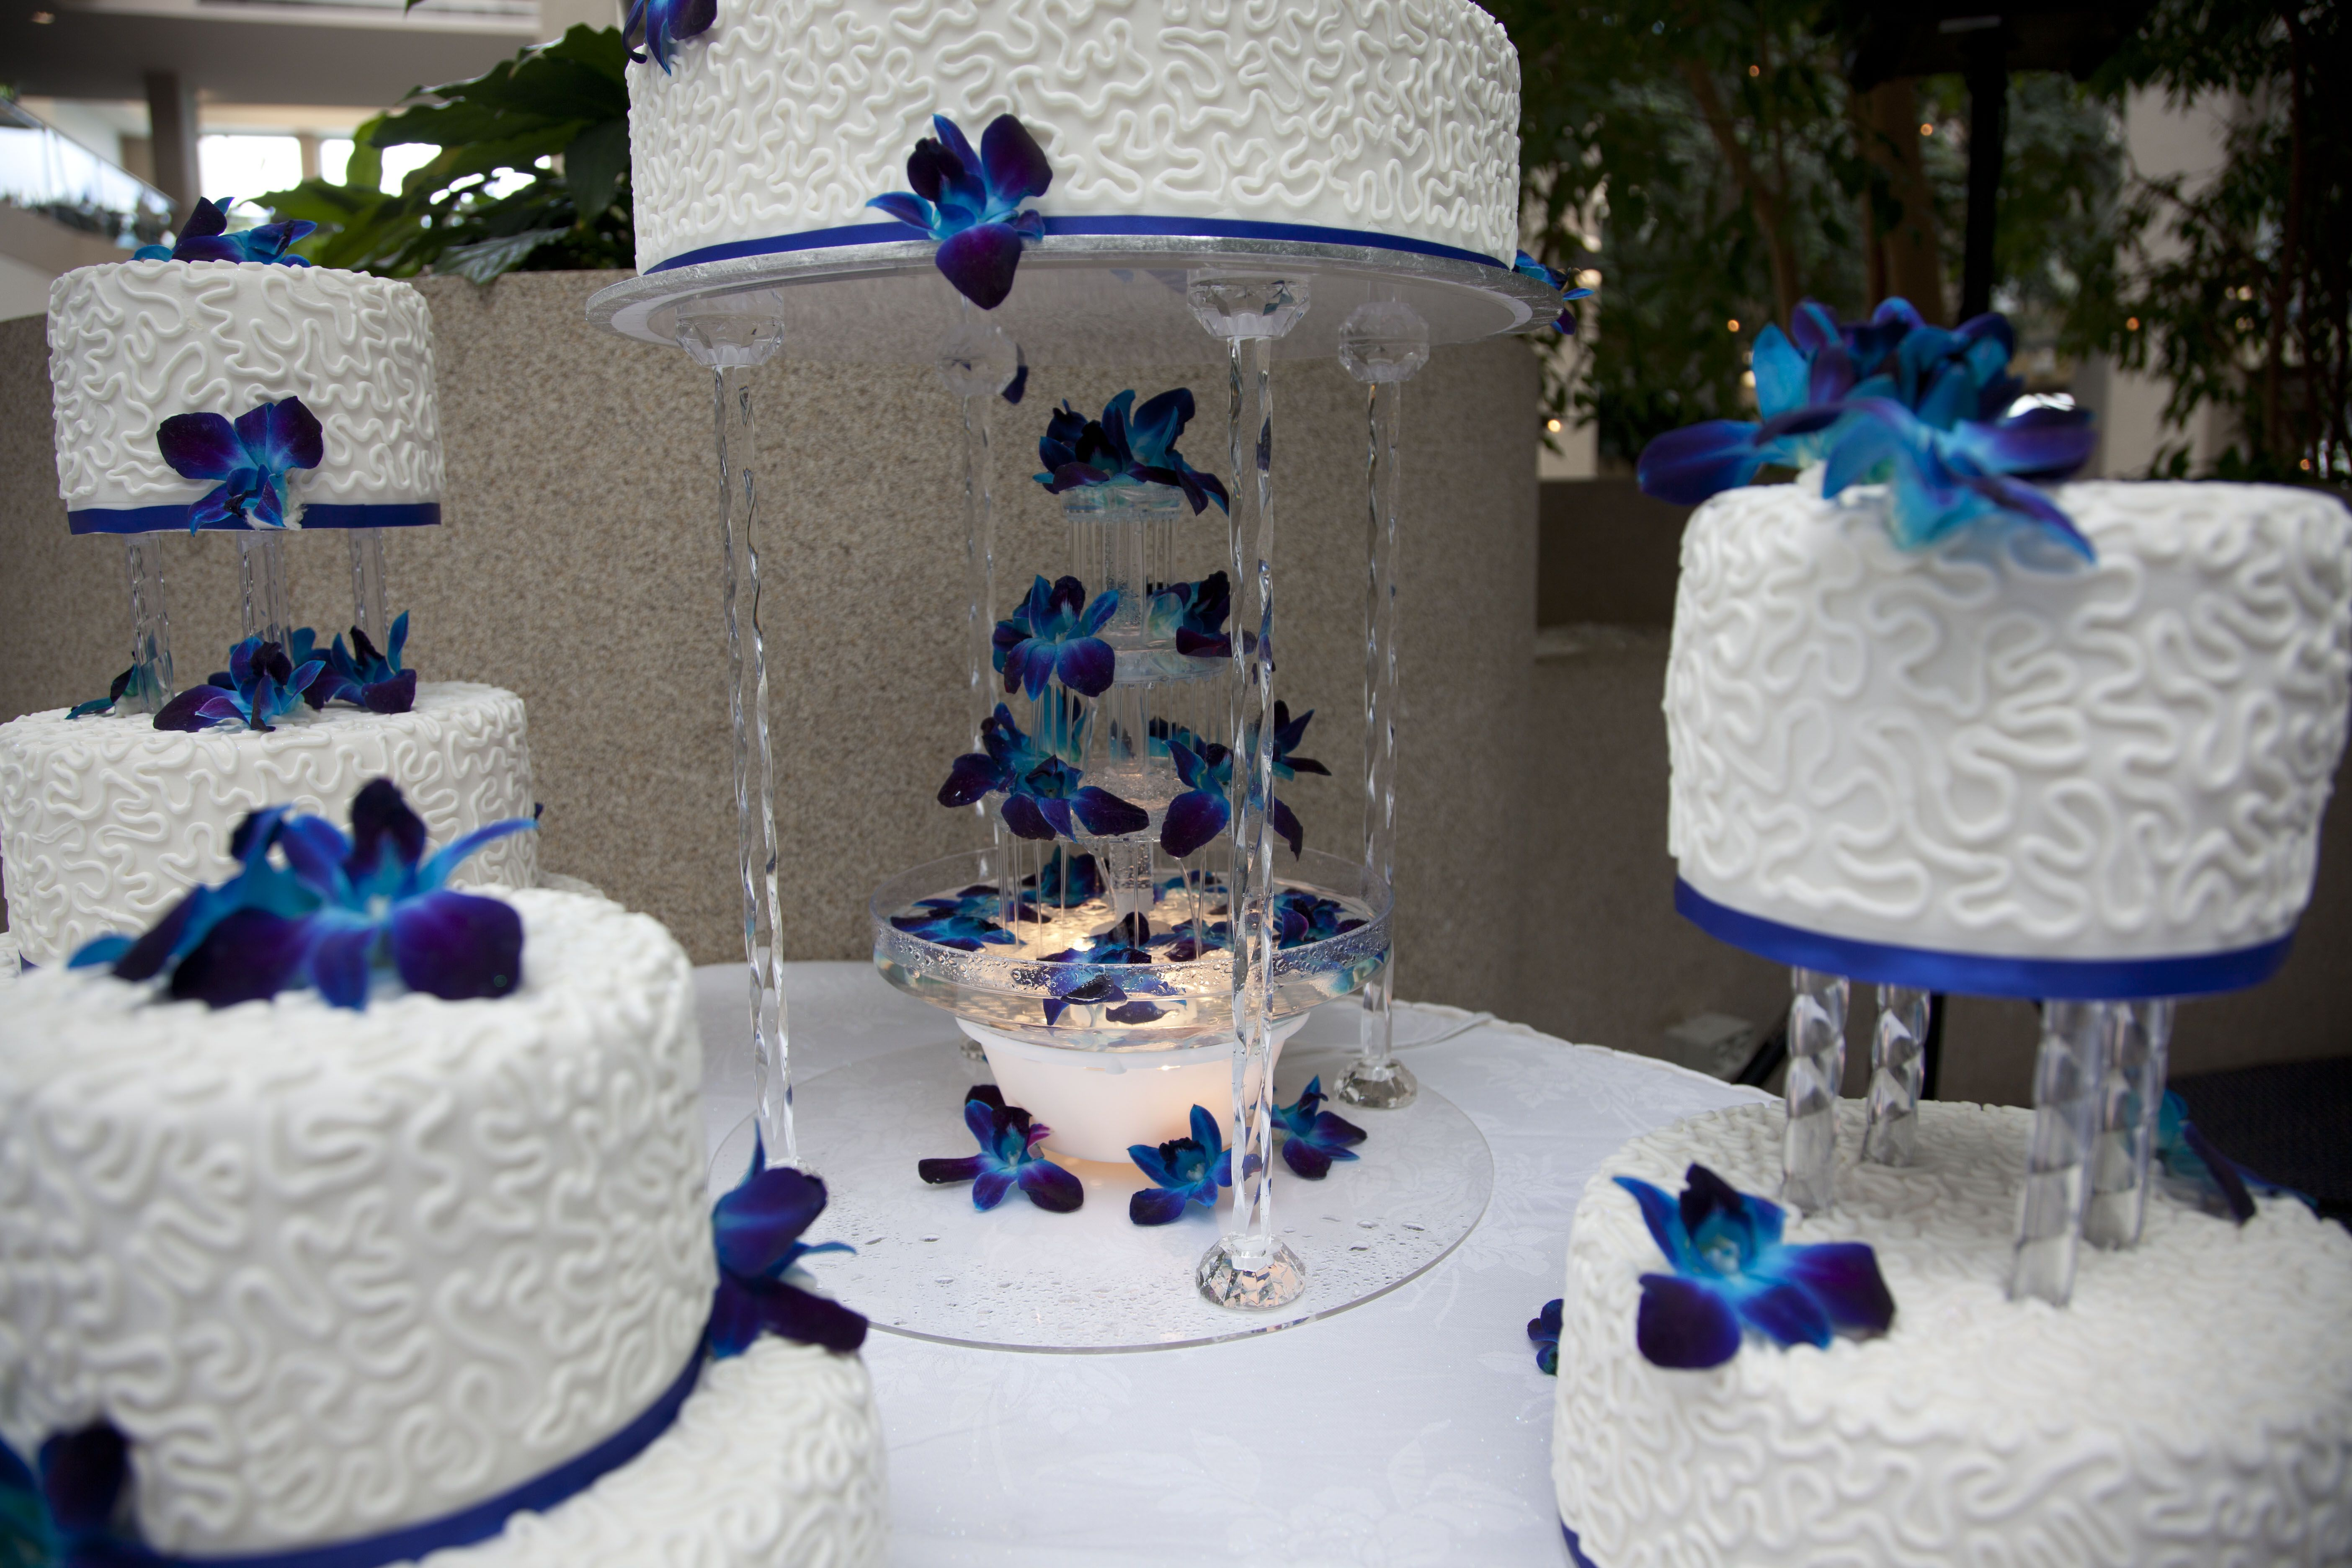 Water Fountain Under The Royal Blue Wedding Cake Decorated With White Chocolate Butter Cream